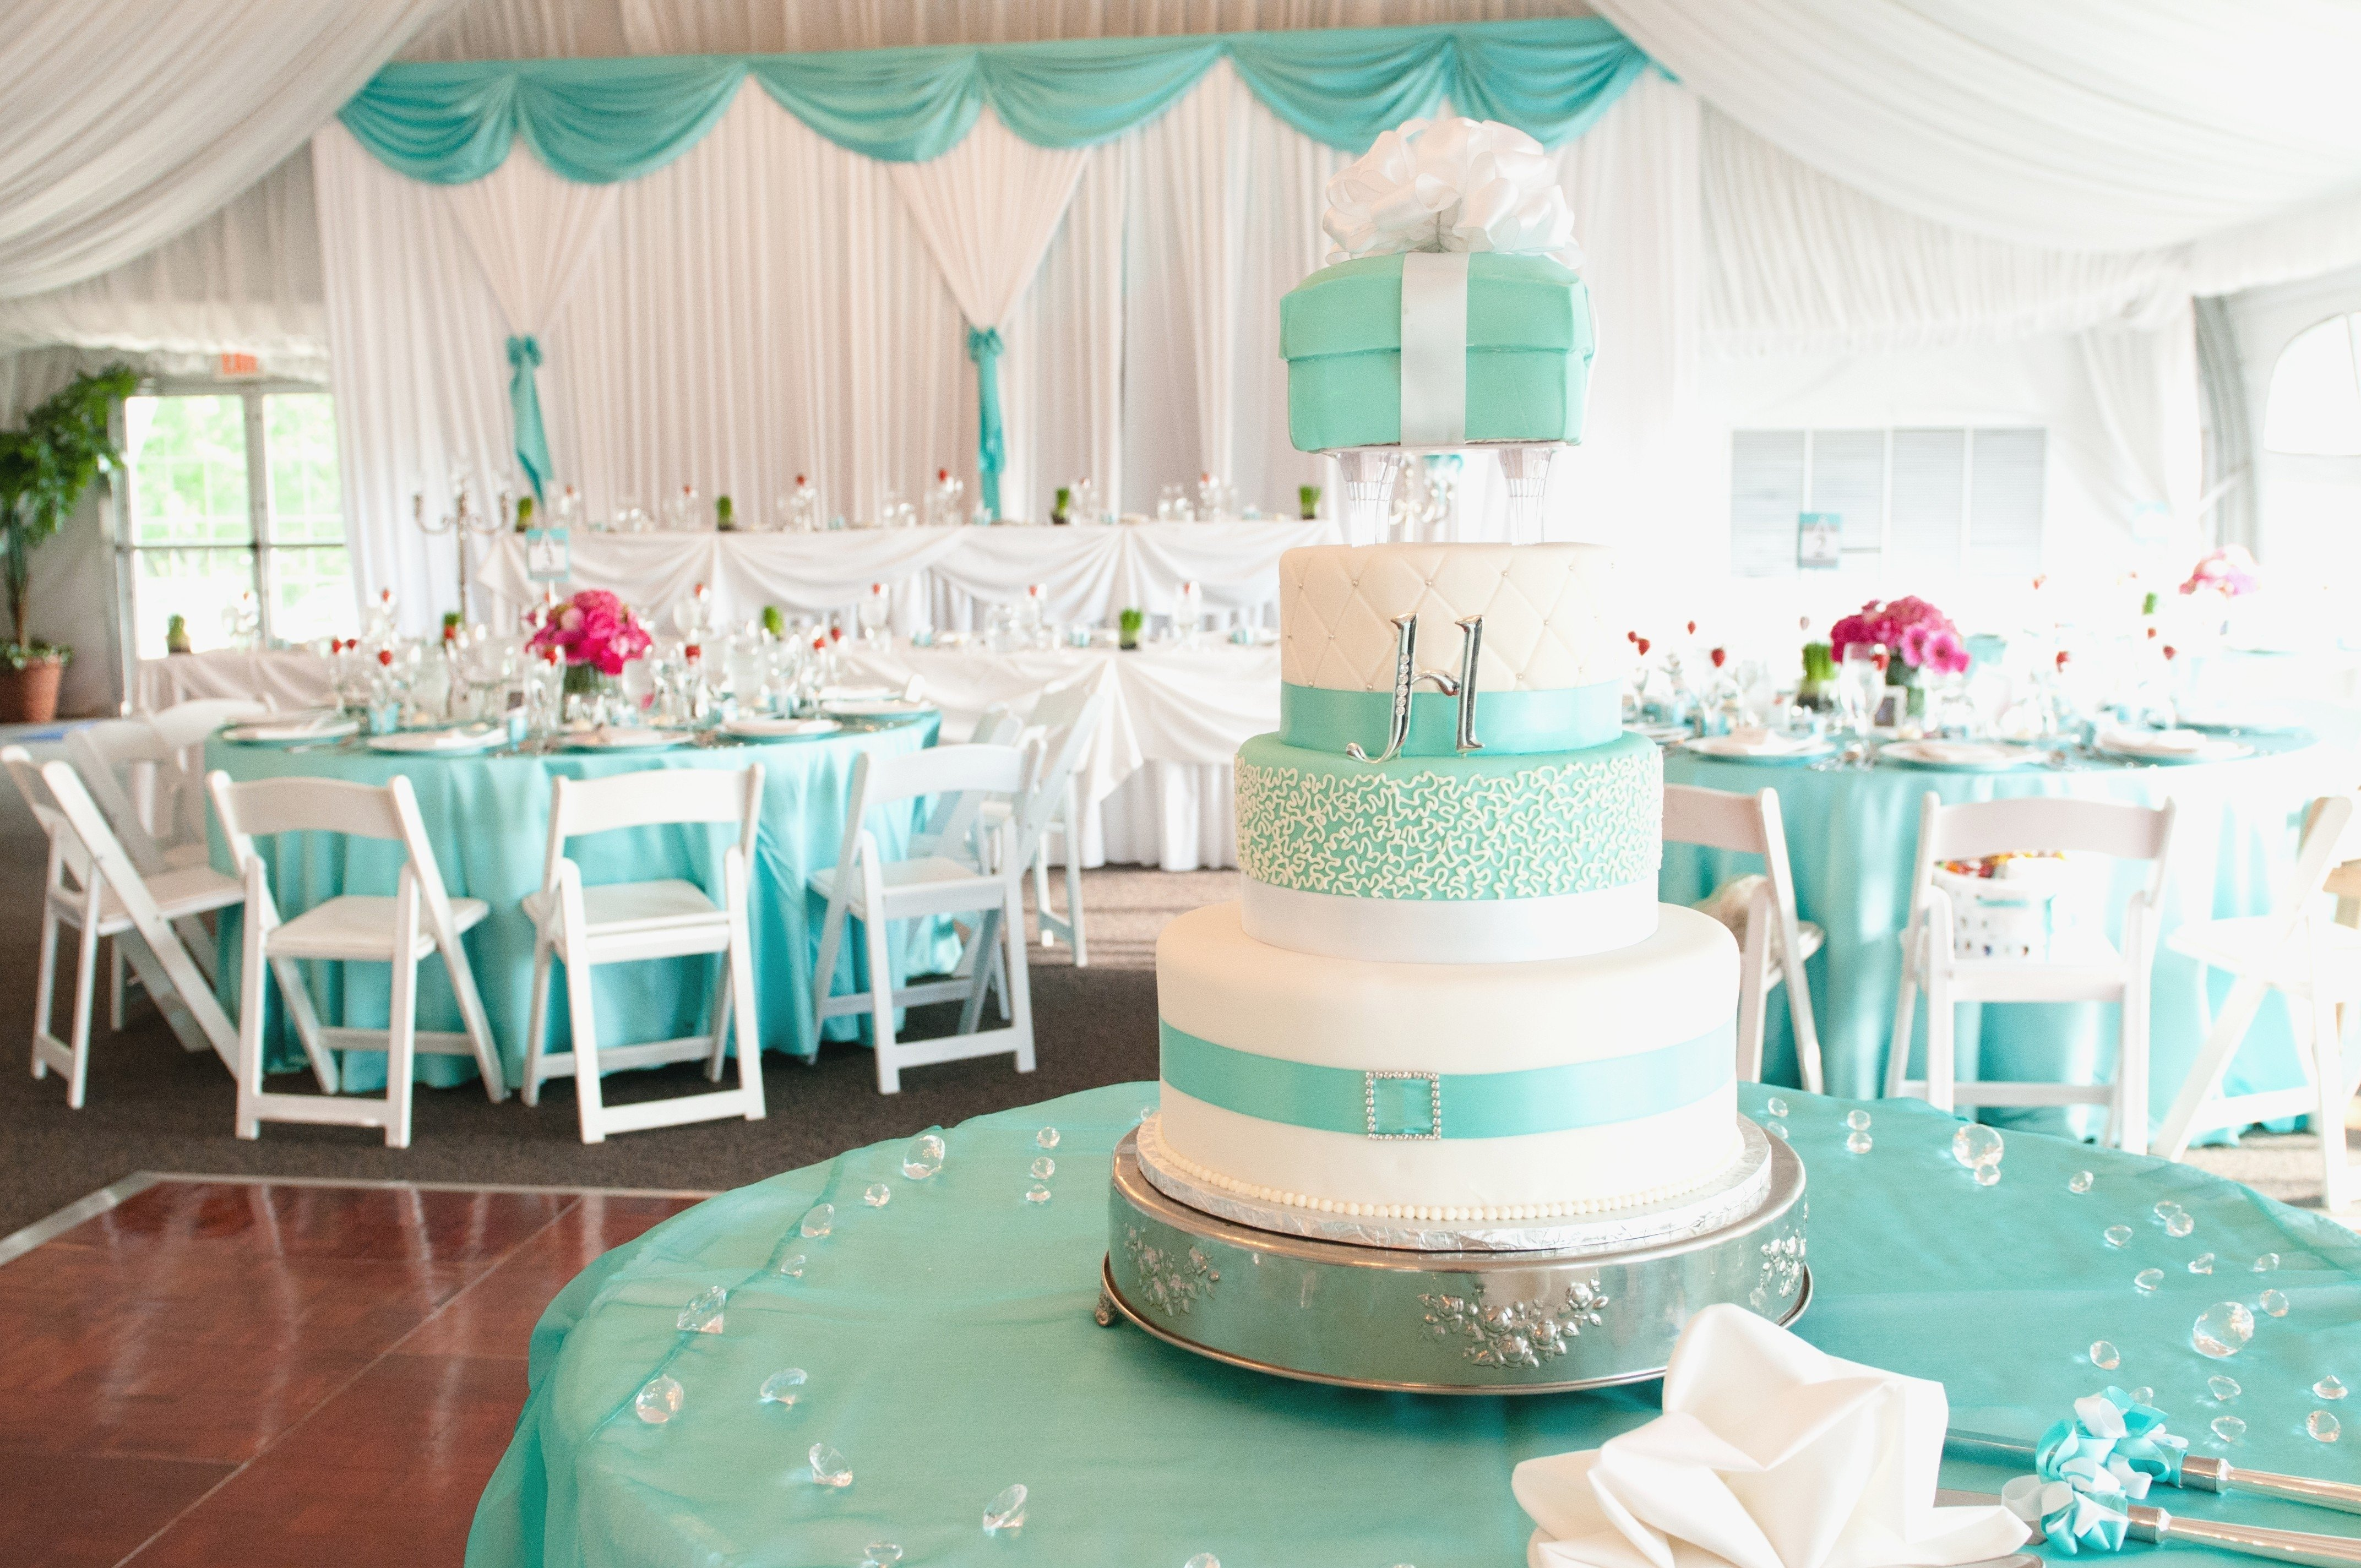 10 Attractive Tiffany Blue Wedding Theme Ideas ideas tiffany blue wedding decorations icets 2020